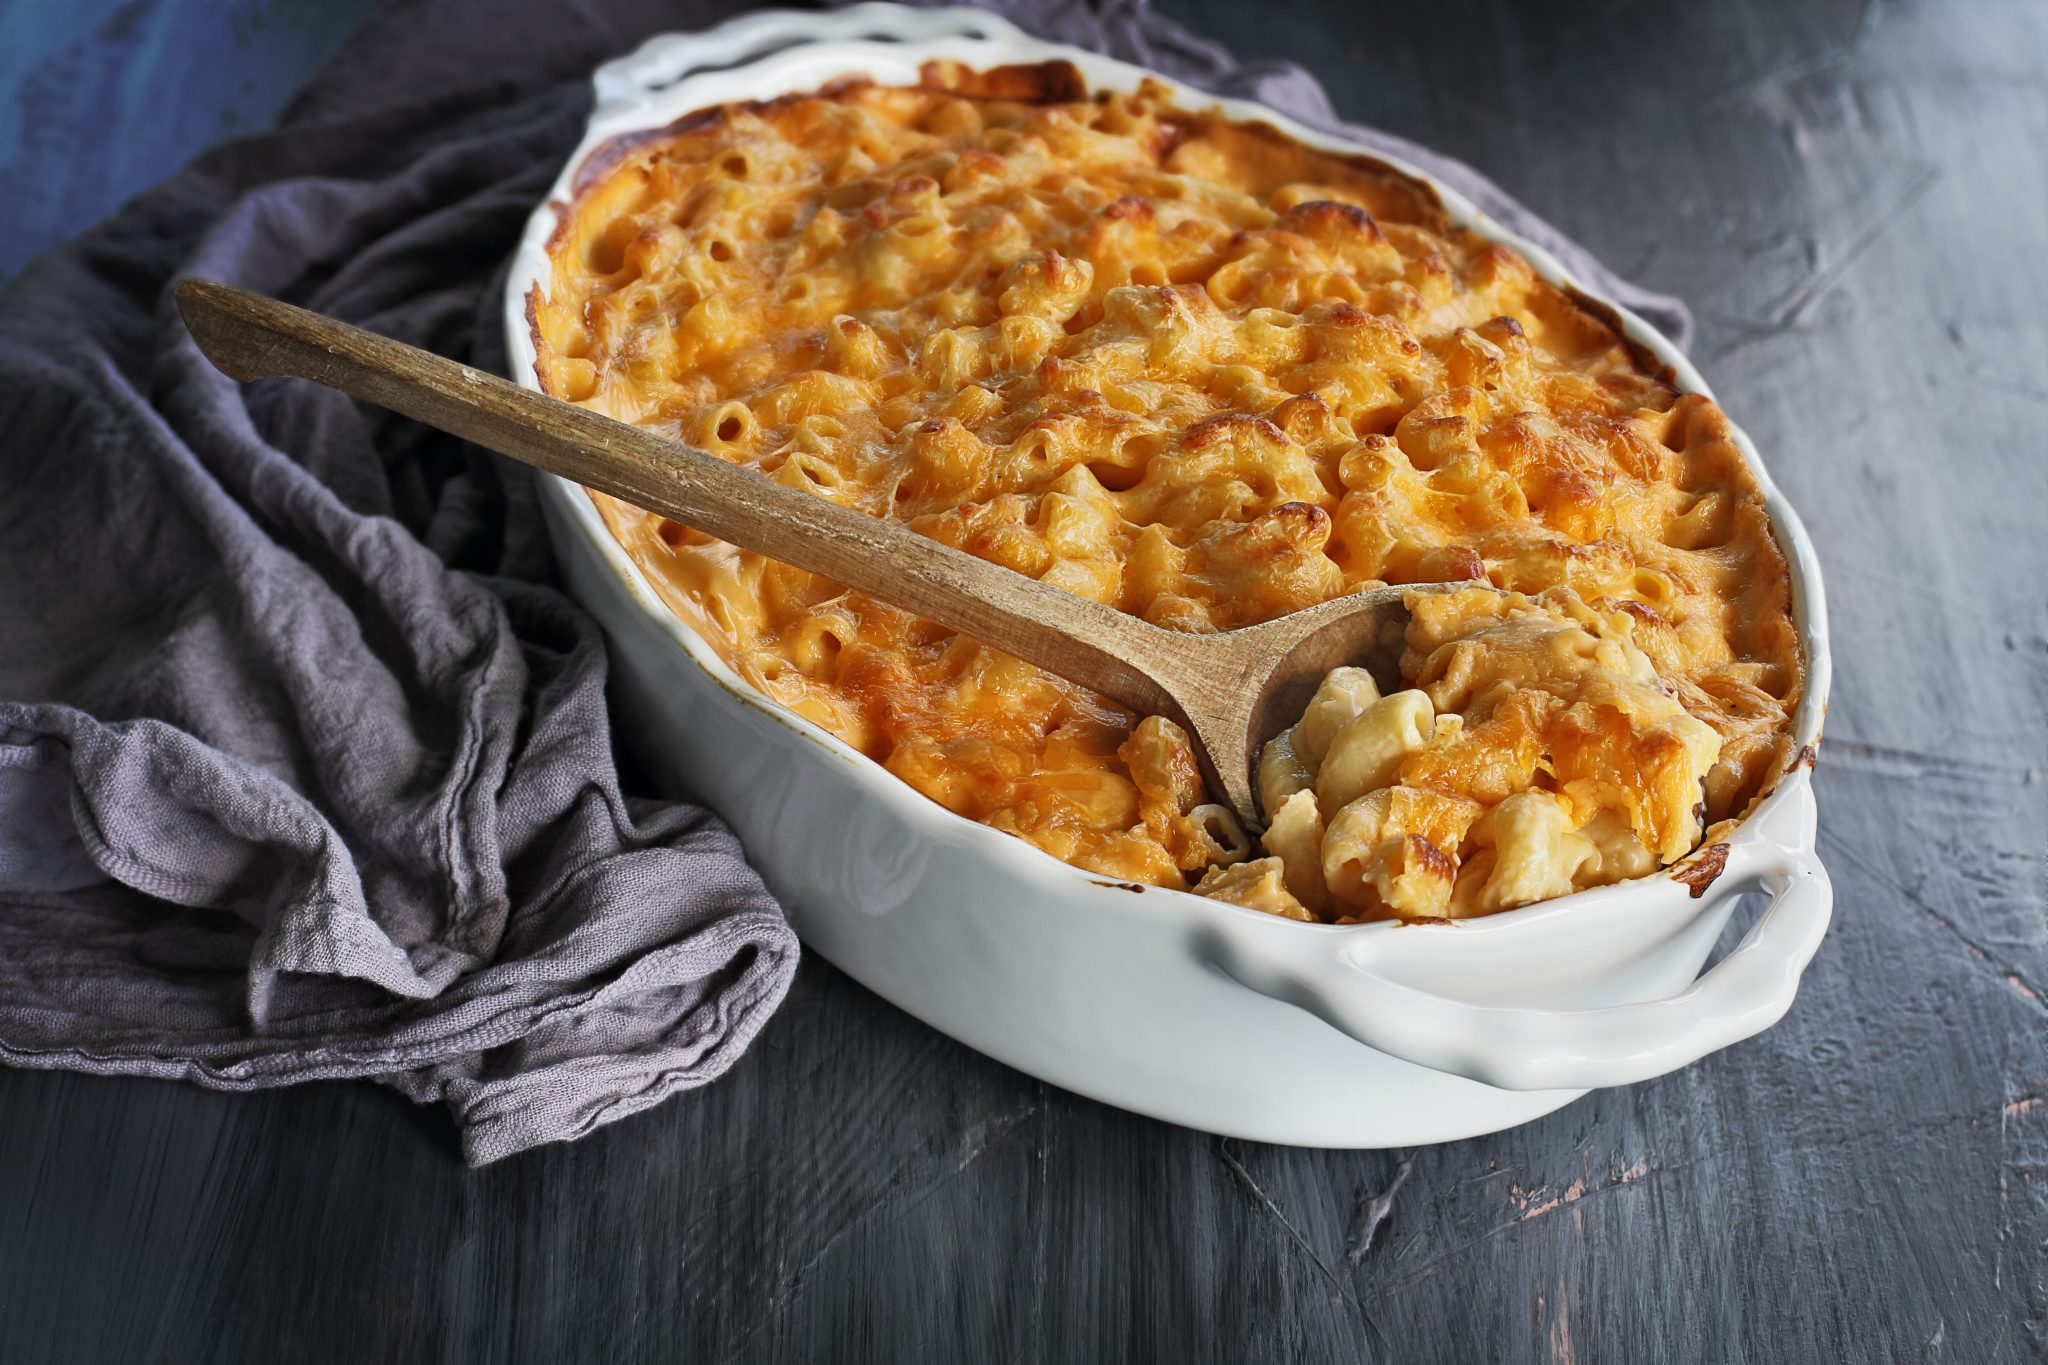 Godminster Four Cheese Truffle Mac and Cheese